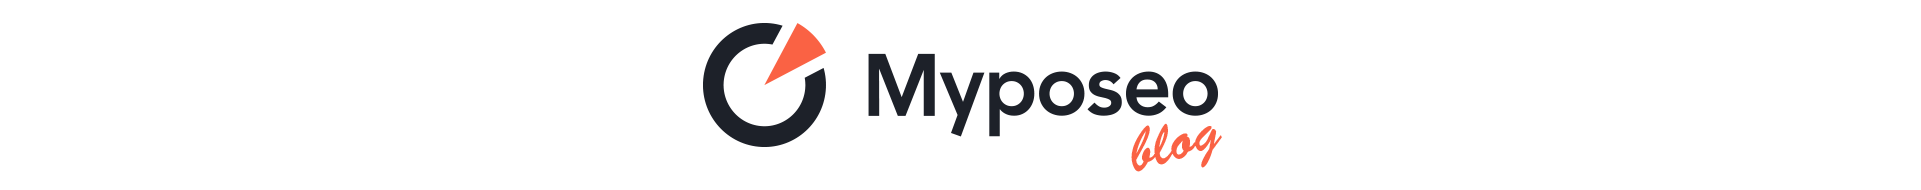 Blog myposeo